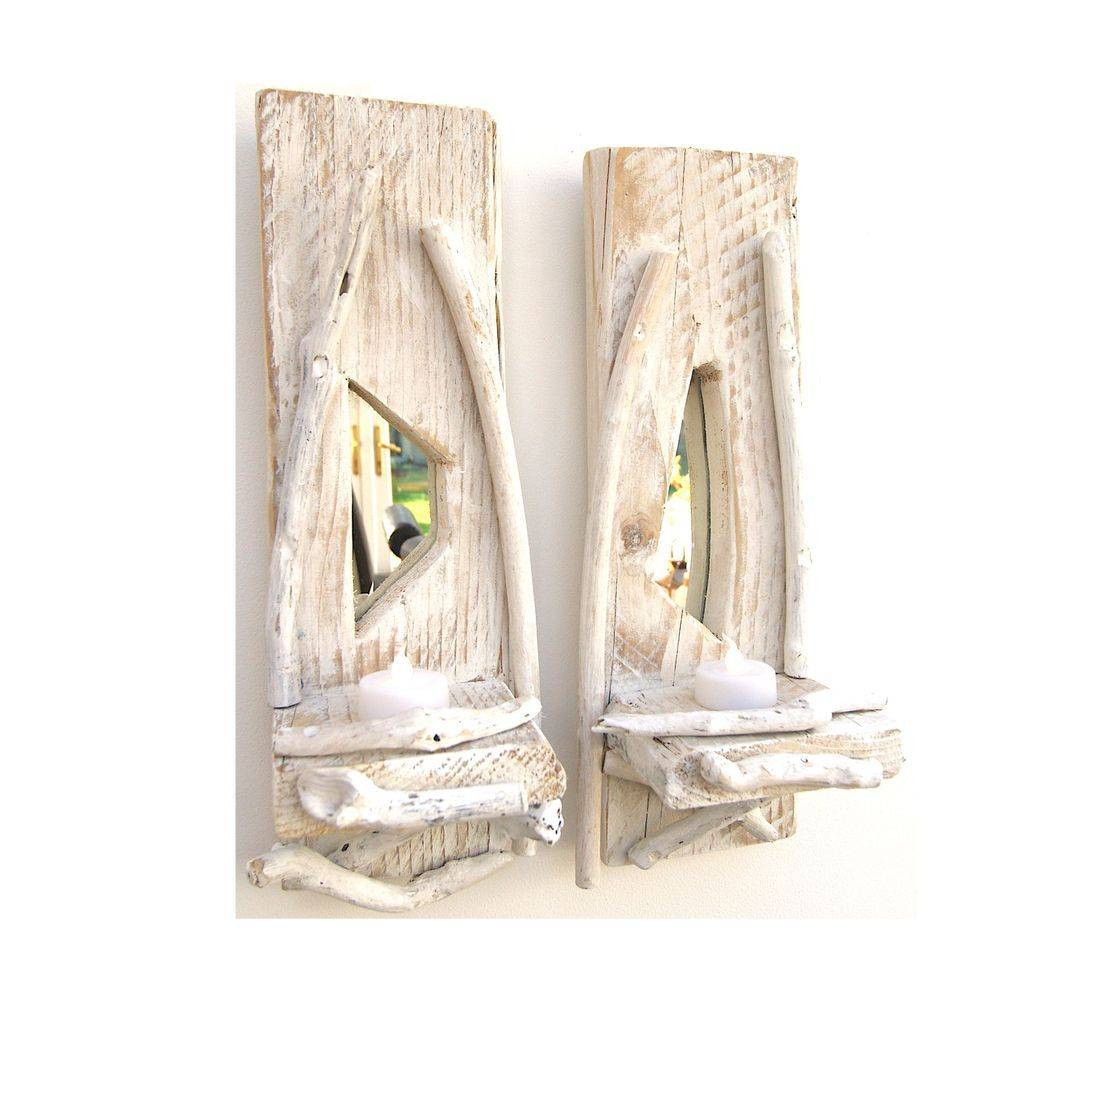 Driftwood Sconce pair 7